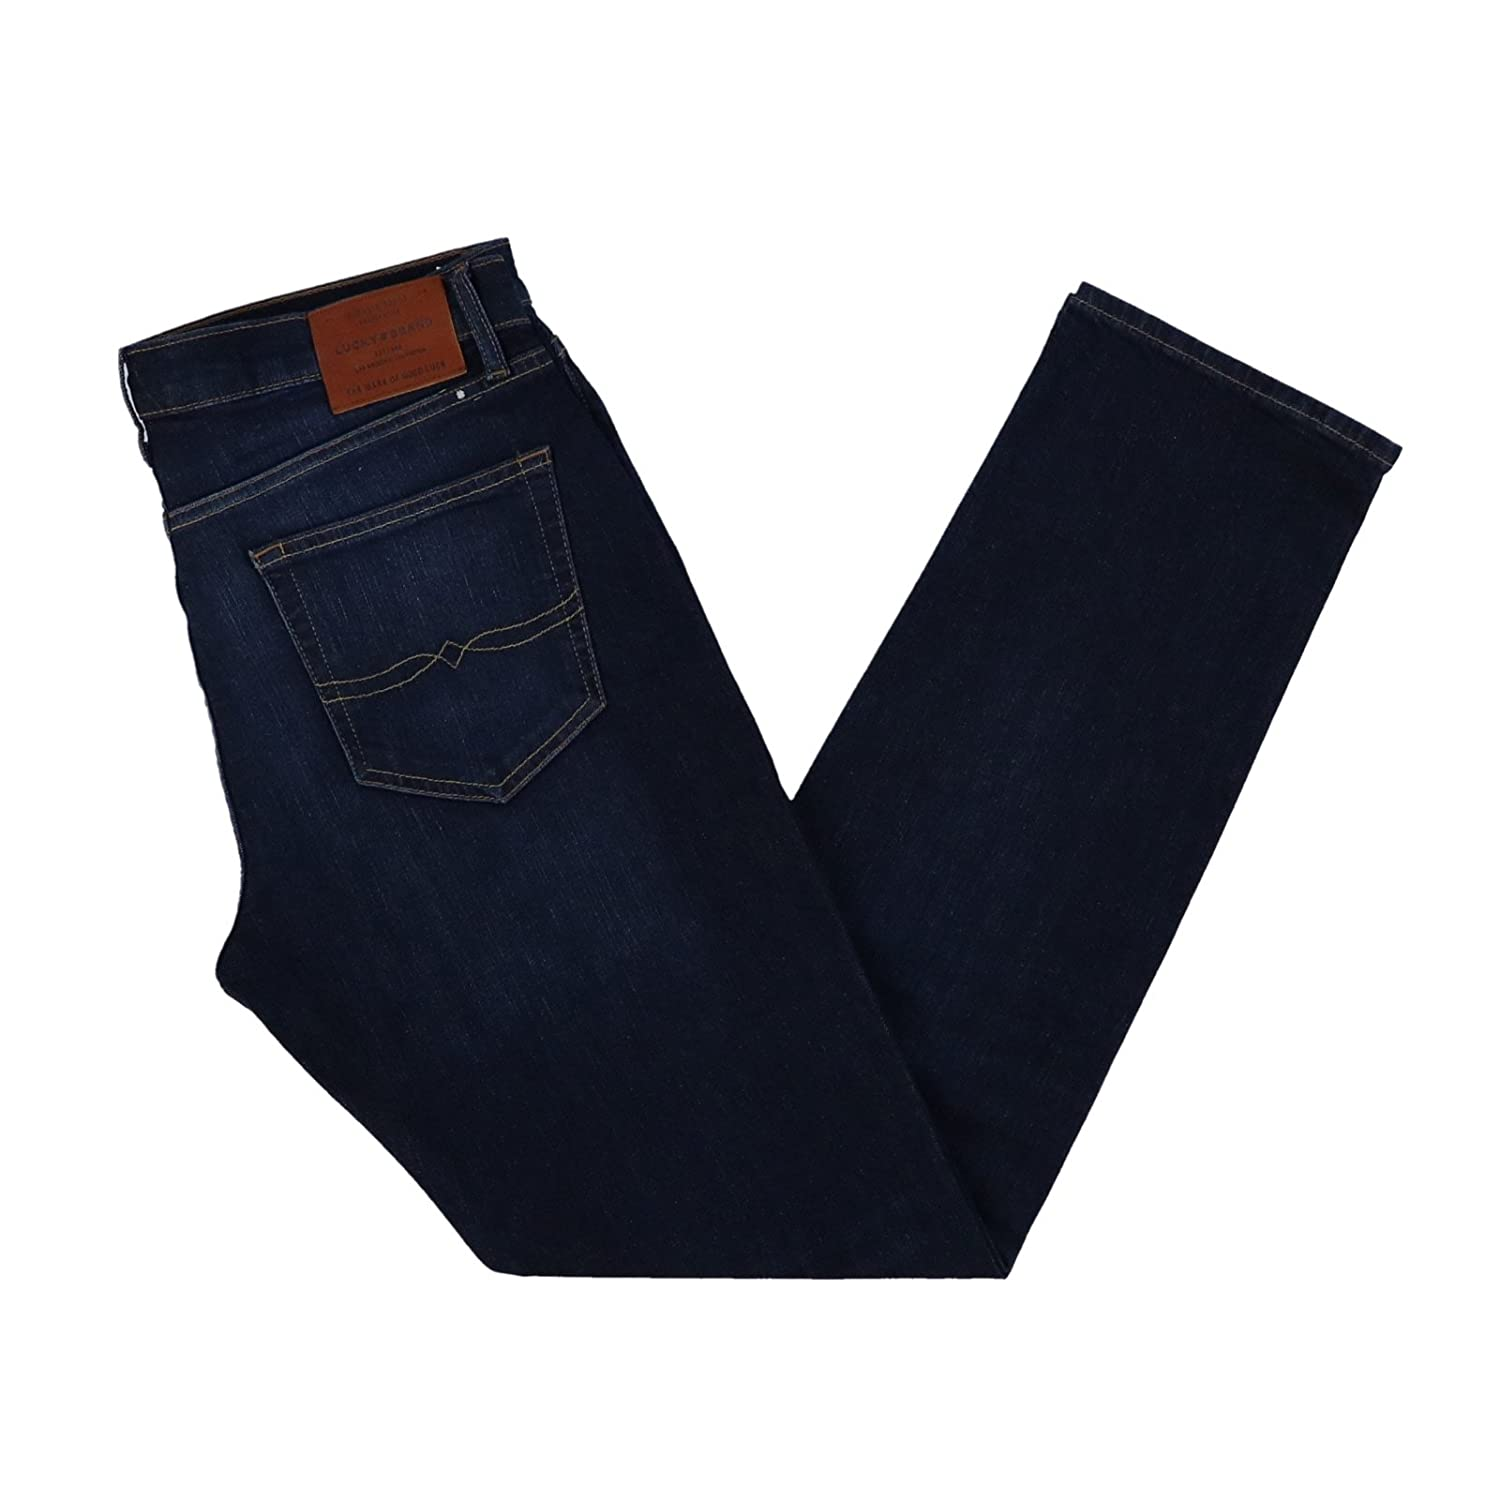 Lucky Brand Mens 121 Slim Fit Jeans